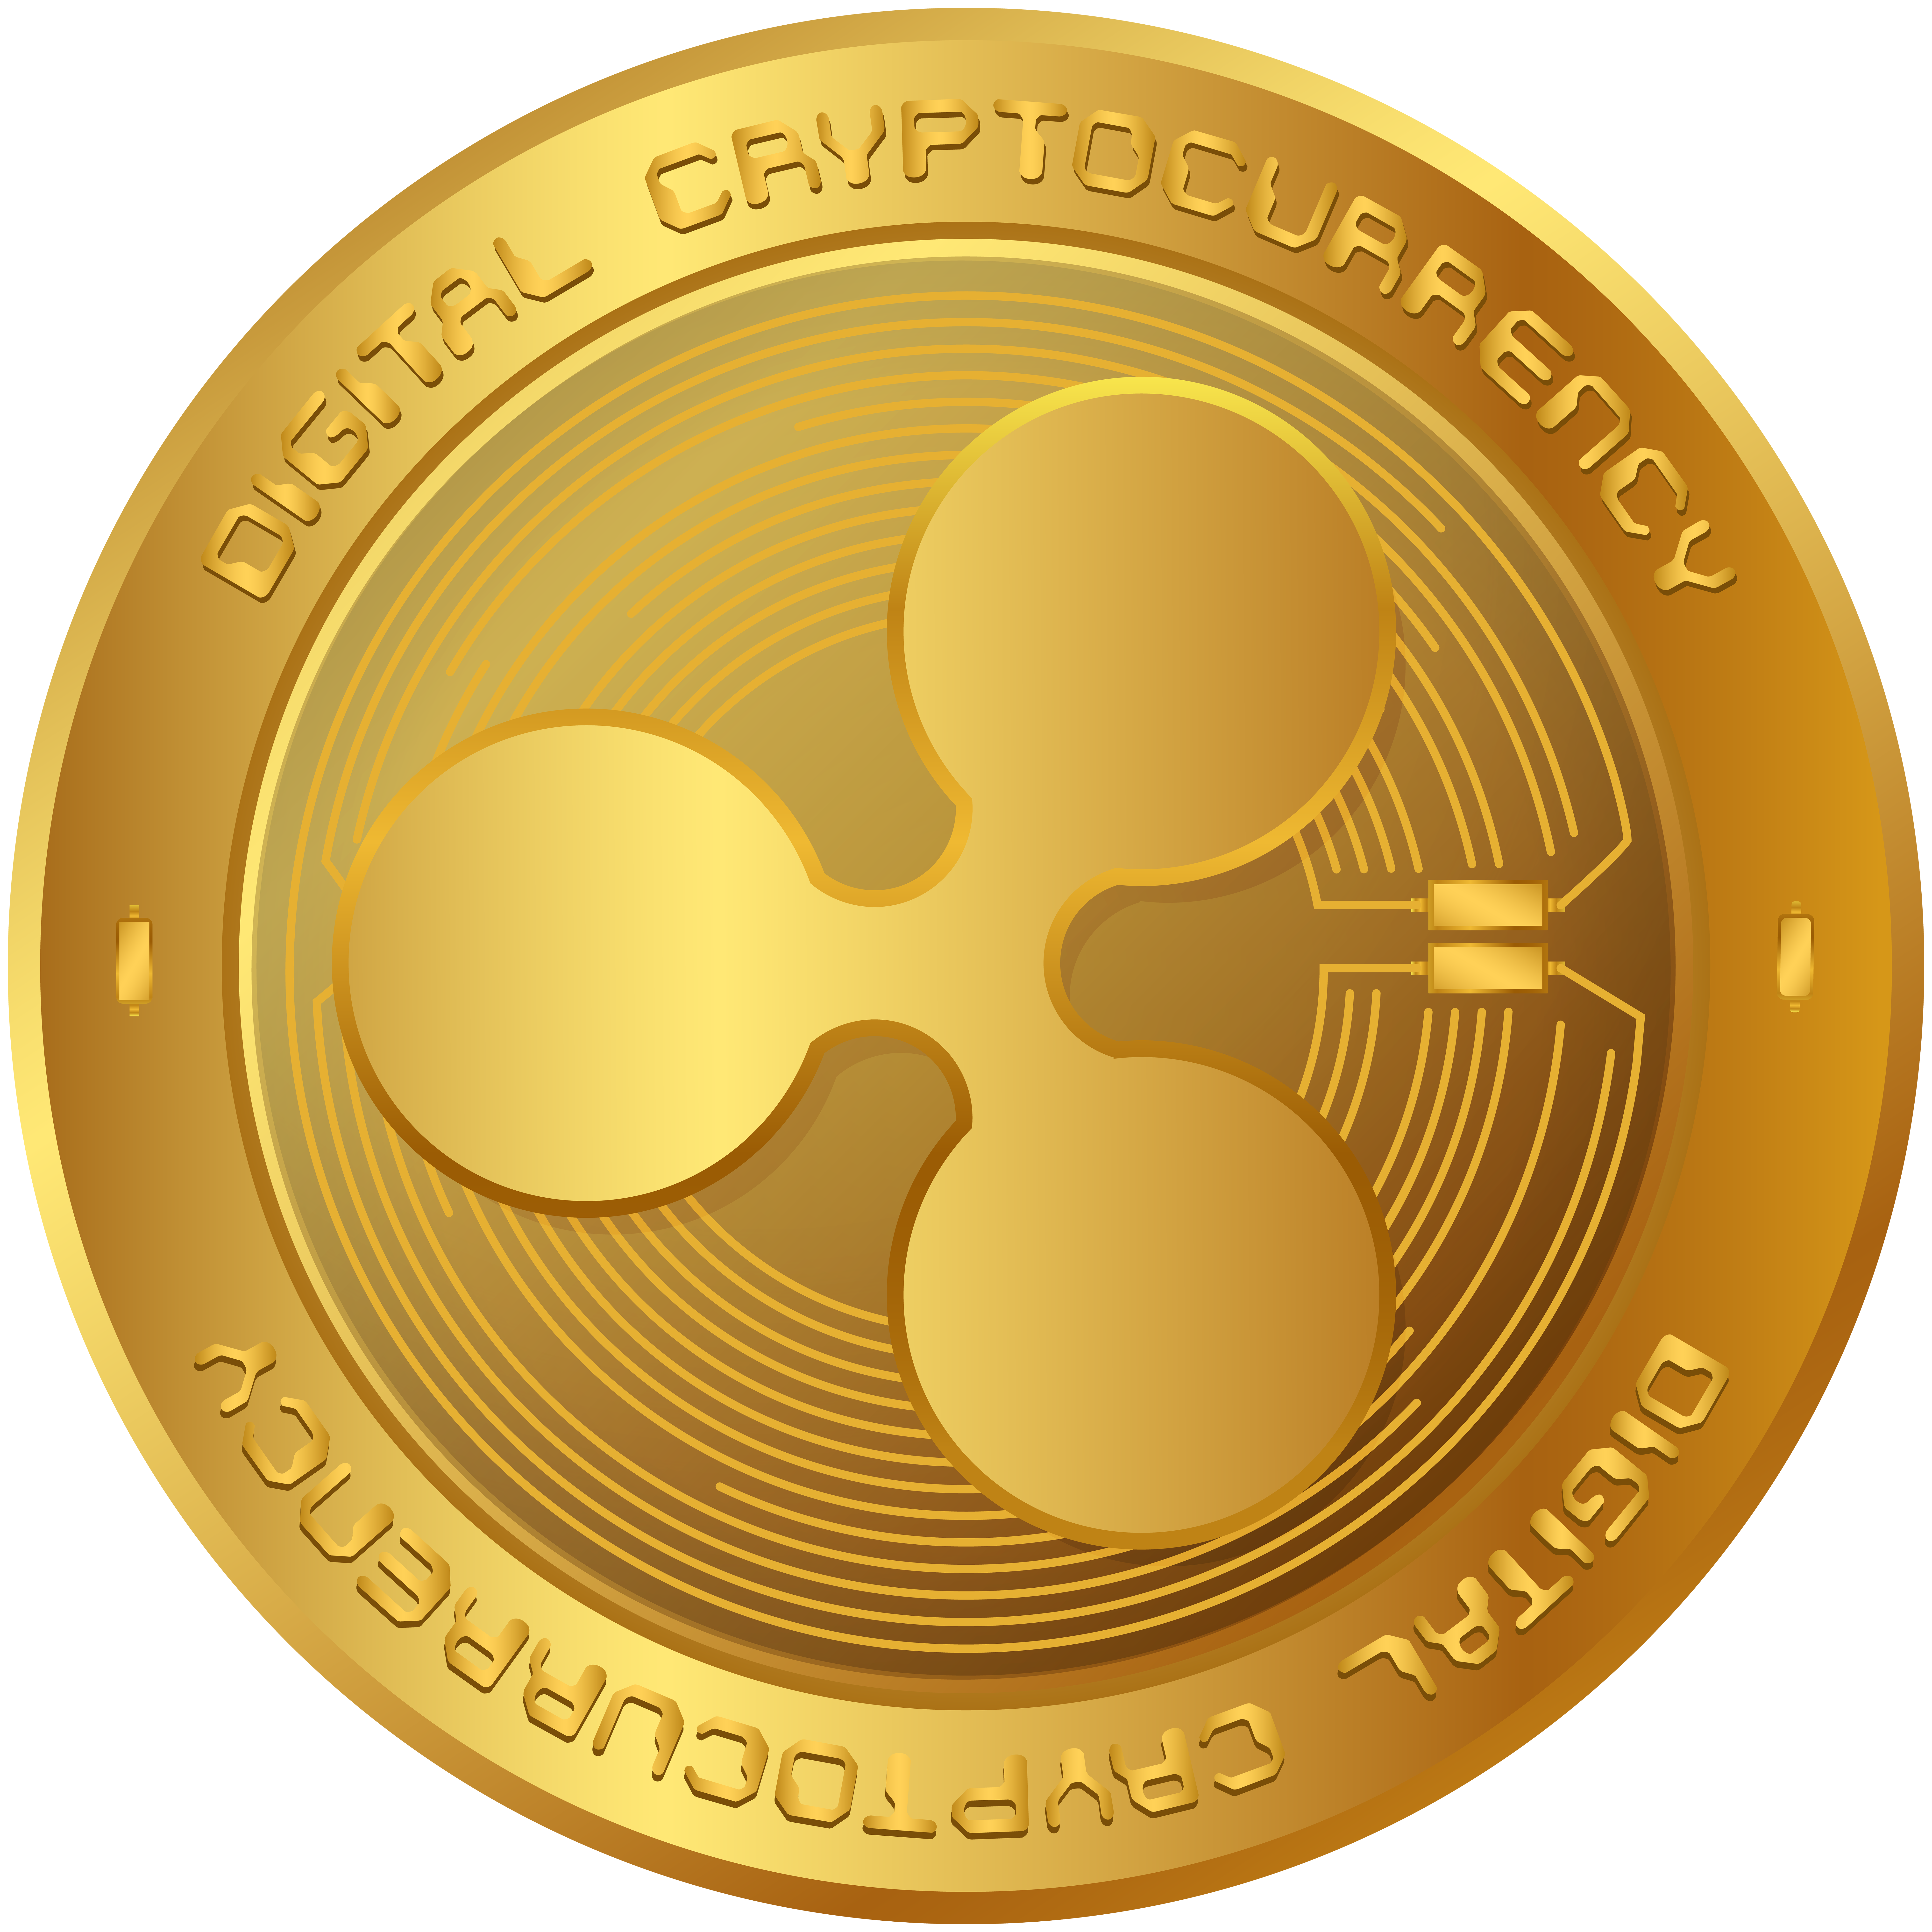 Ripple XRP Cryptocurrency PNG Clip Art Image.